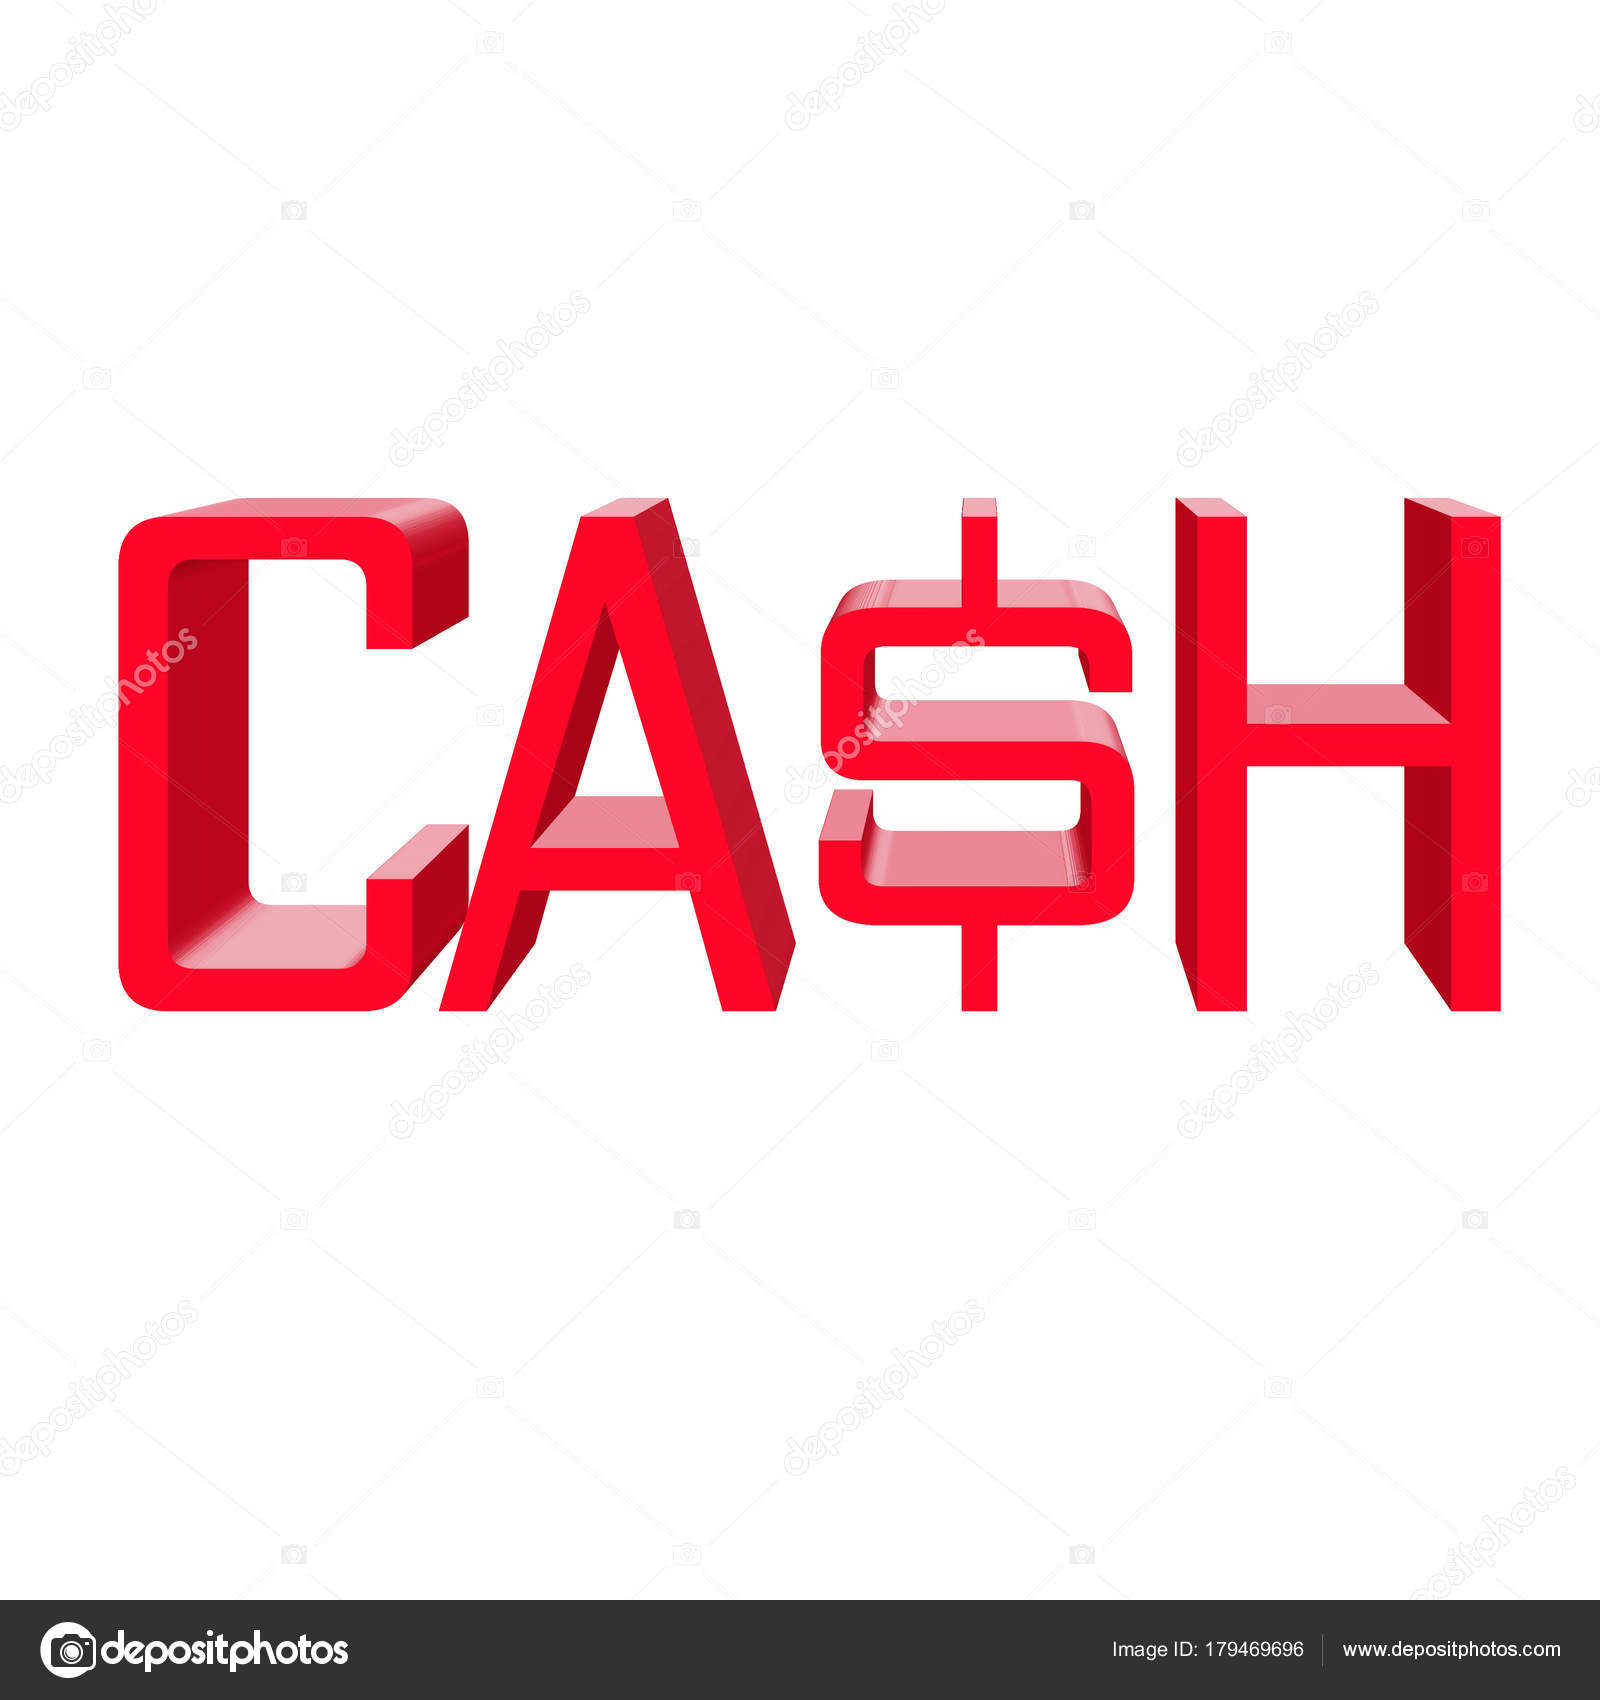 cash word sign red text on white background web icon 3d